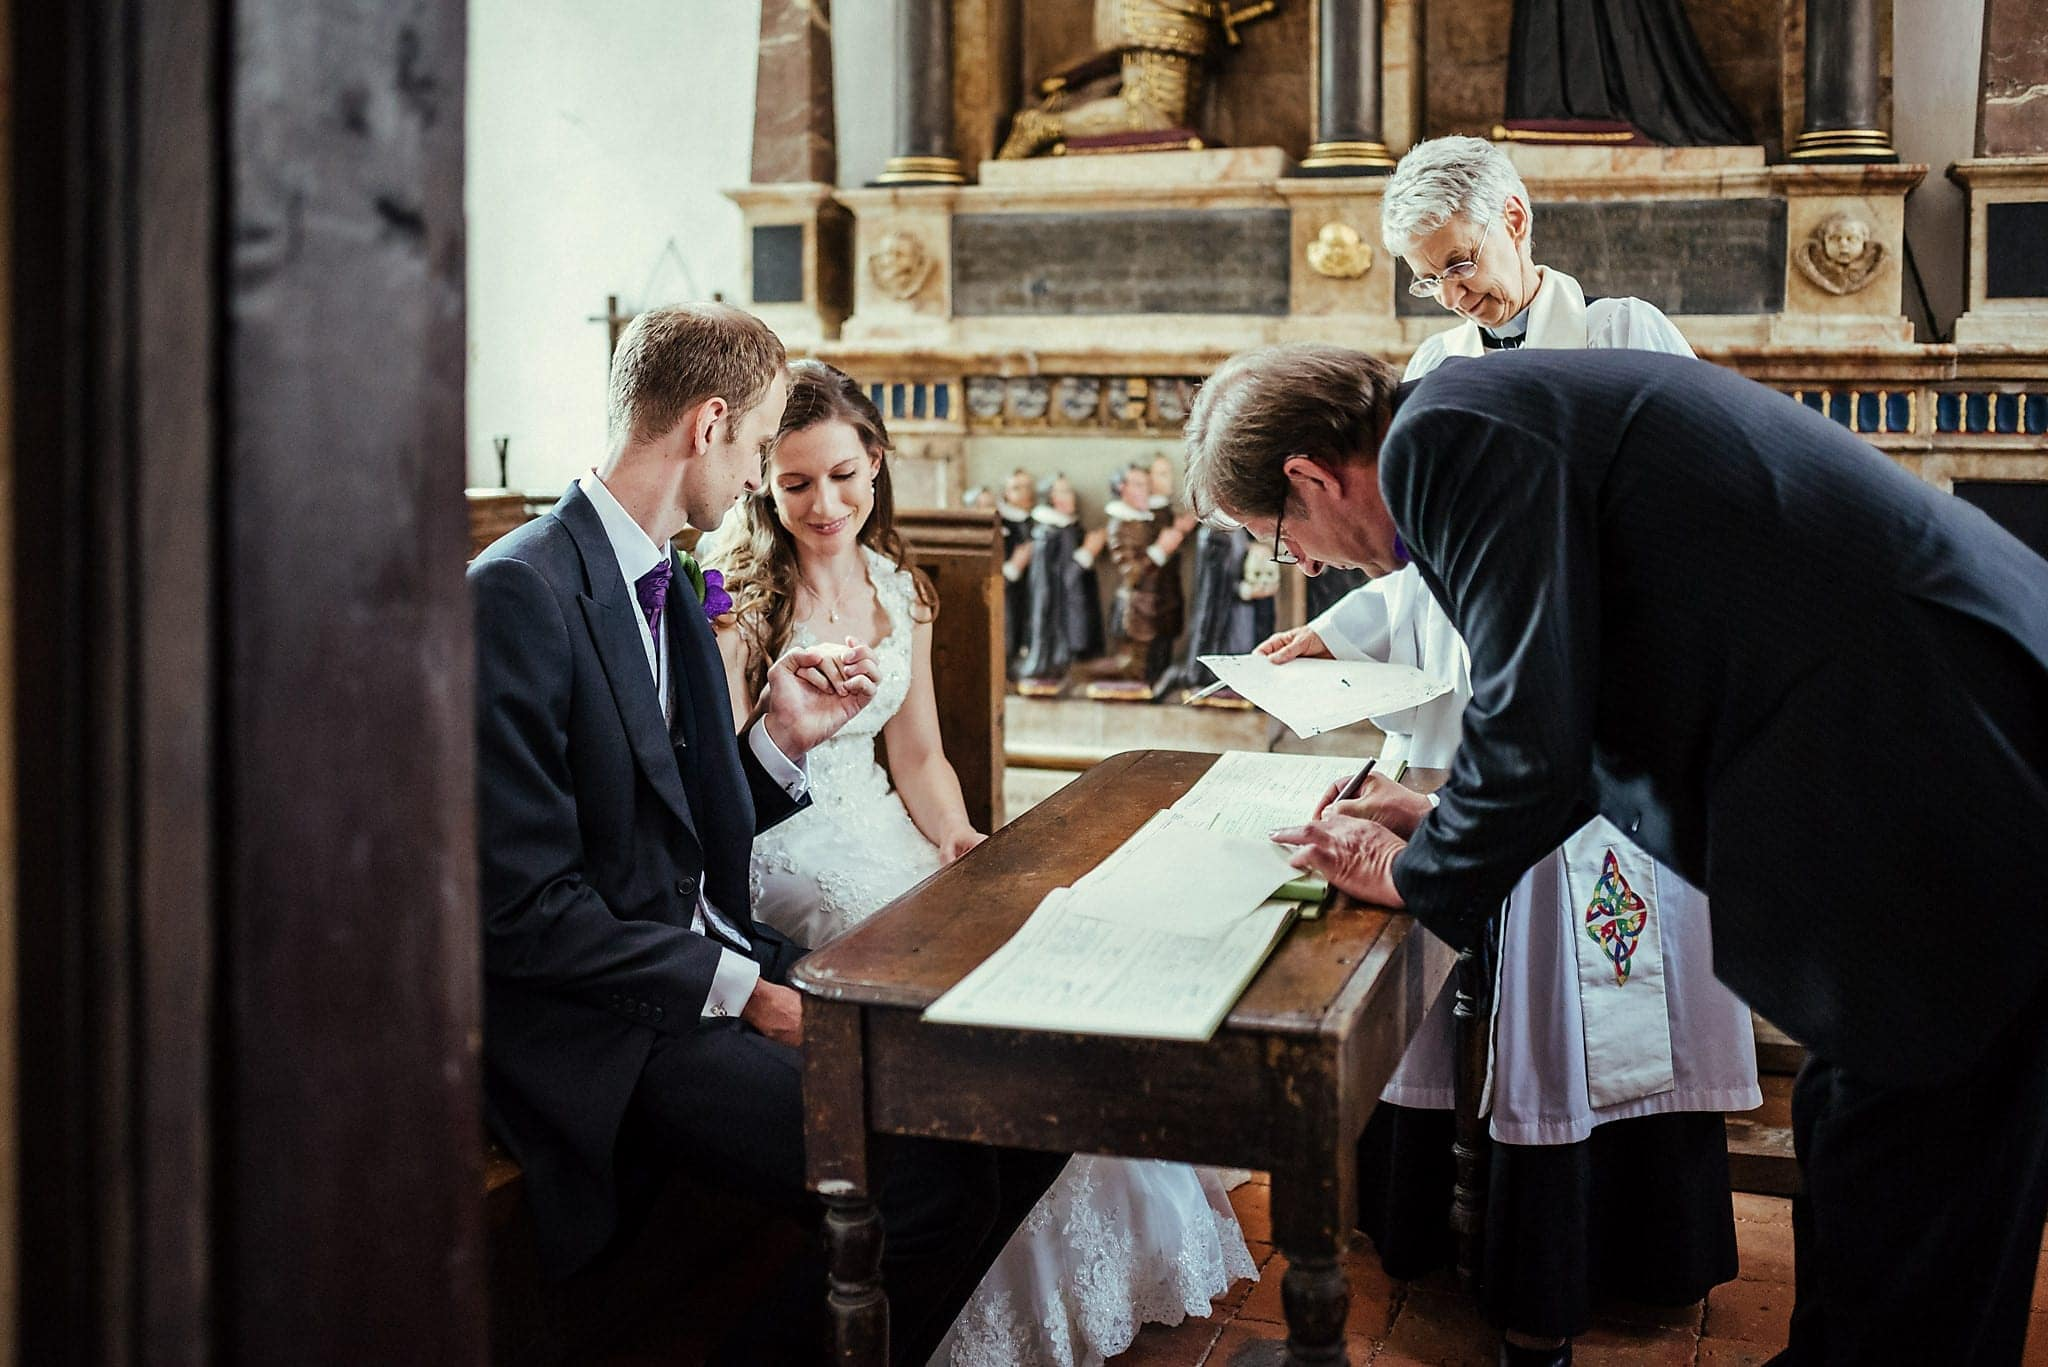 Bride and Groom look at each other's rings as their vicar signs their marriage certificate